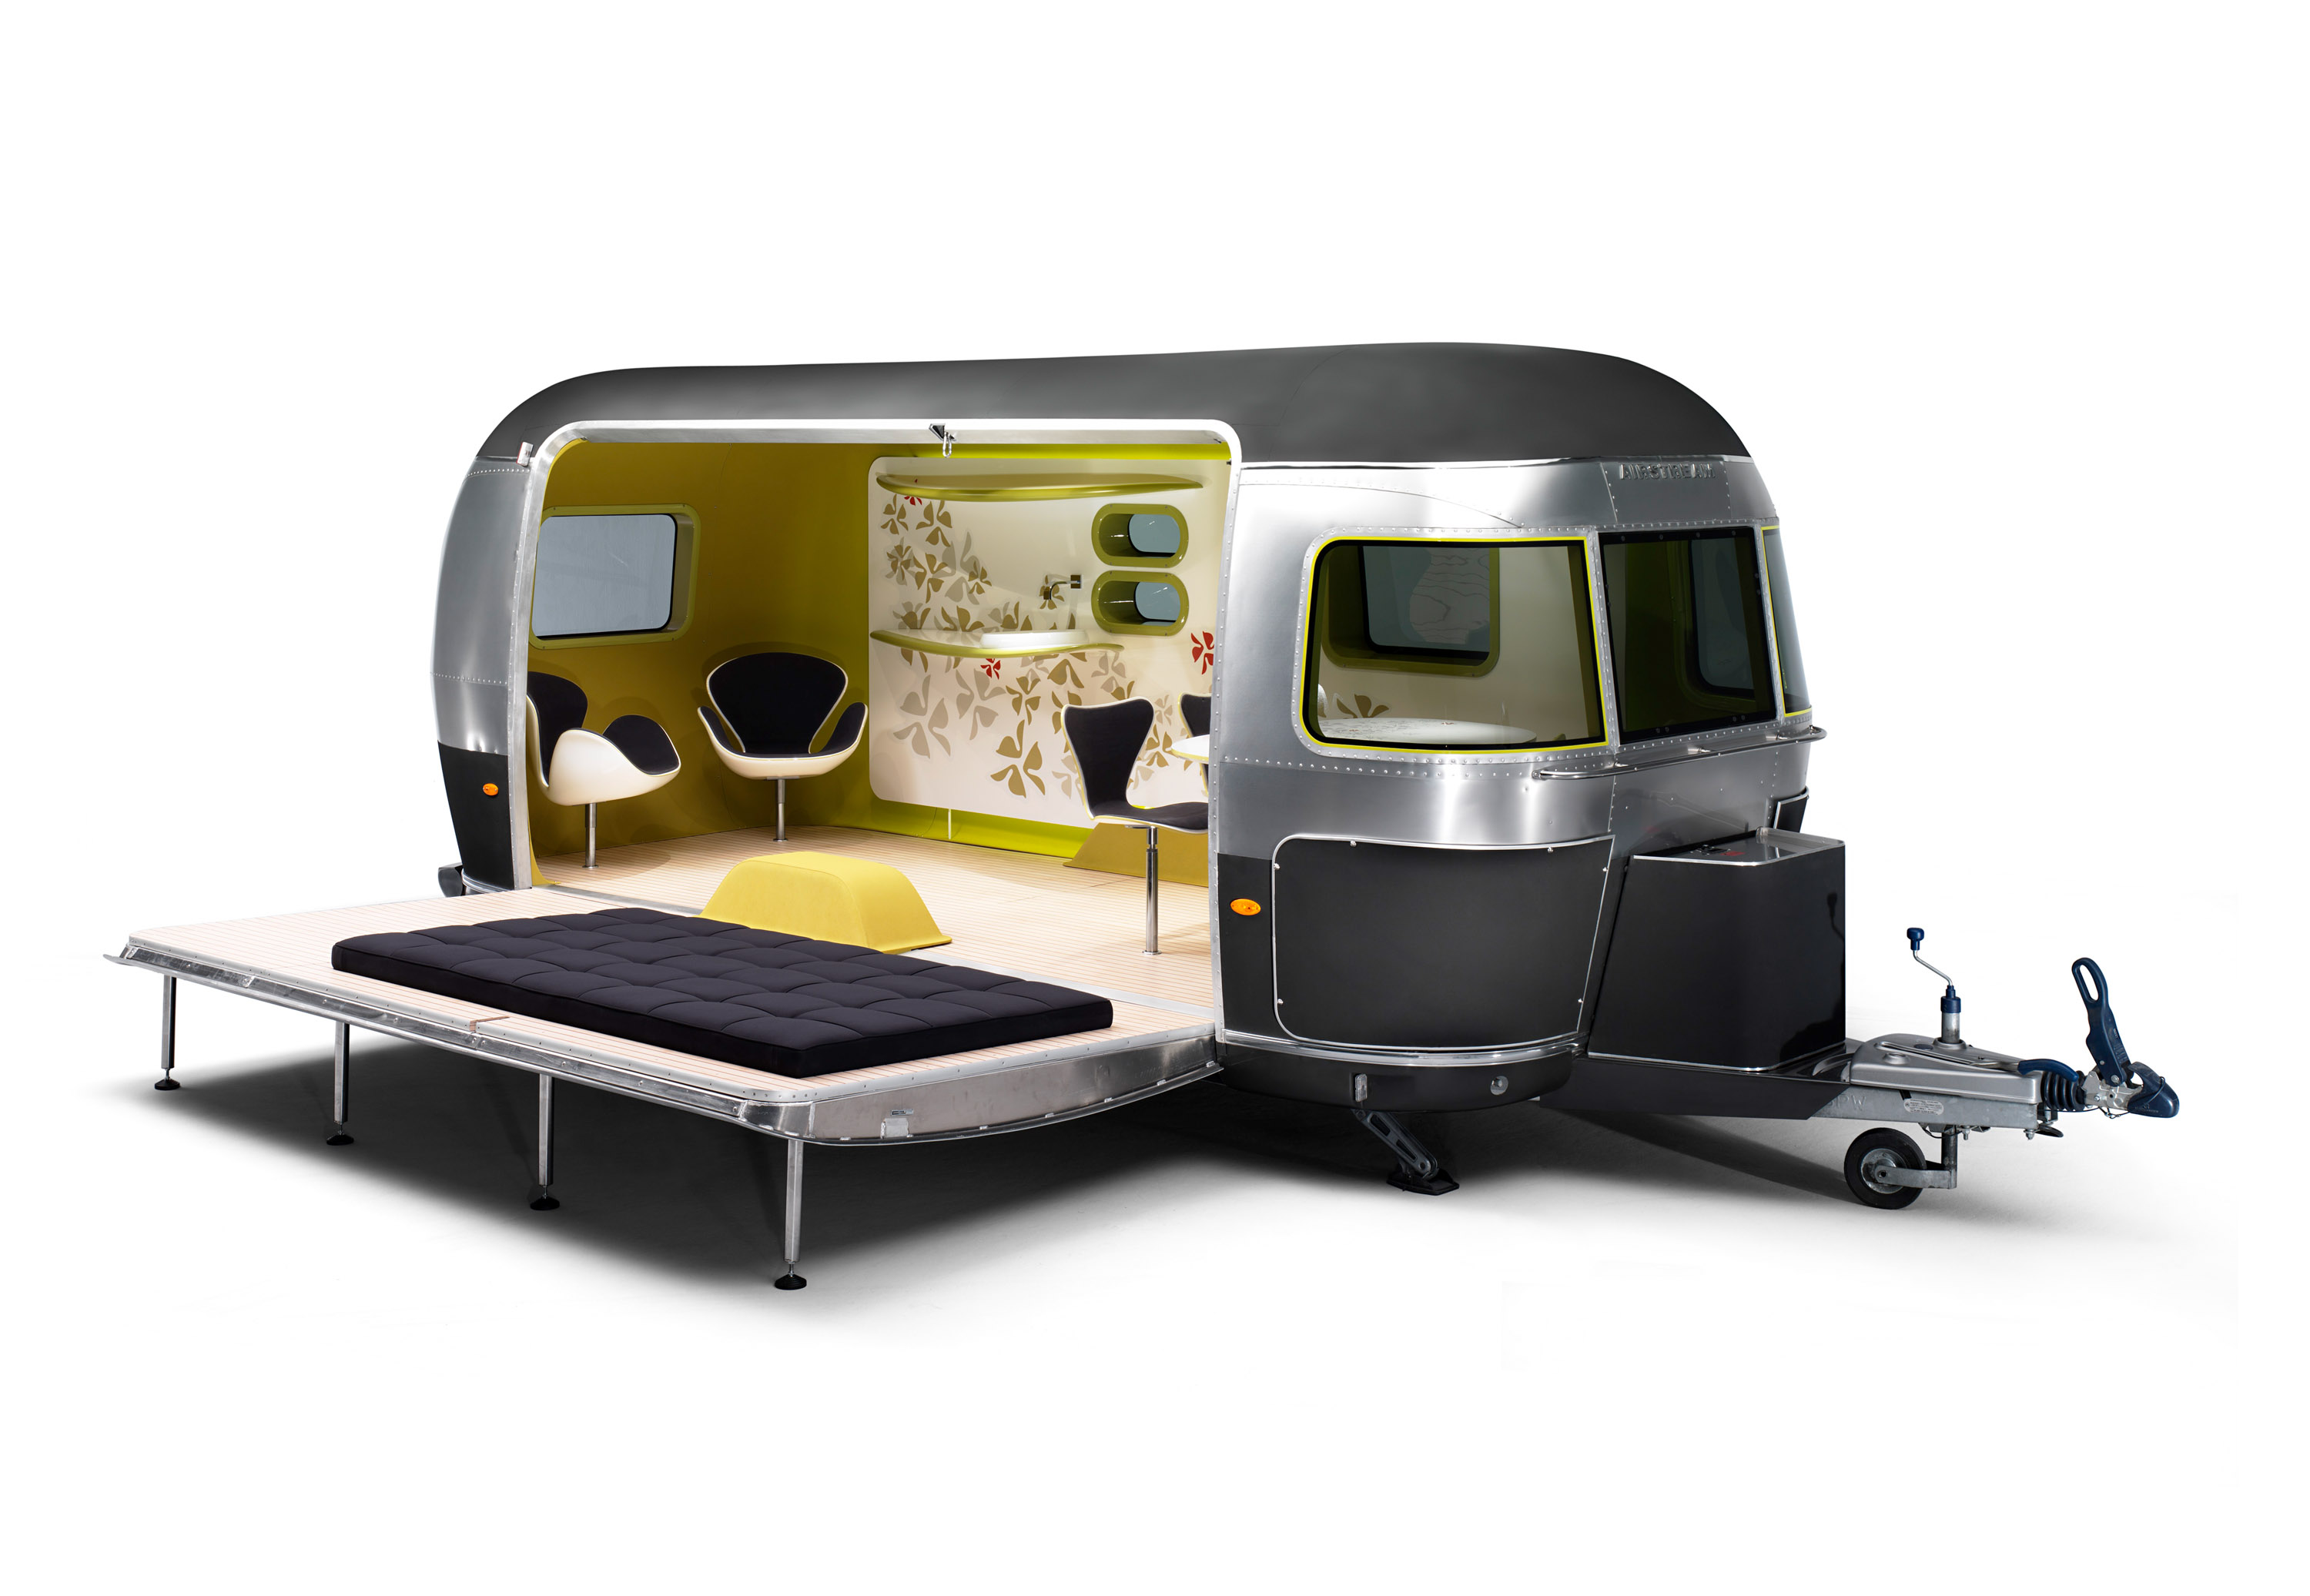 Mini And Airstream Designed By Republic Of Fritz Hansen Picture 21193